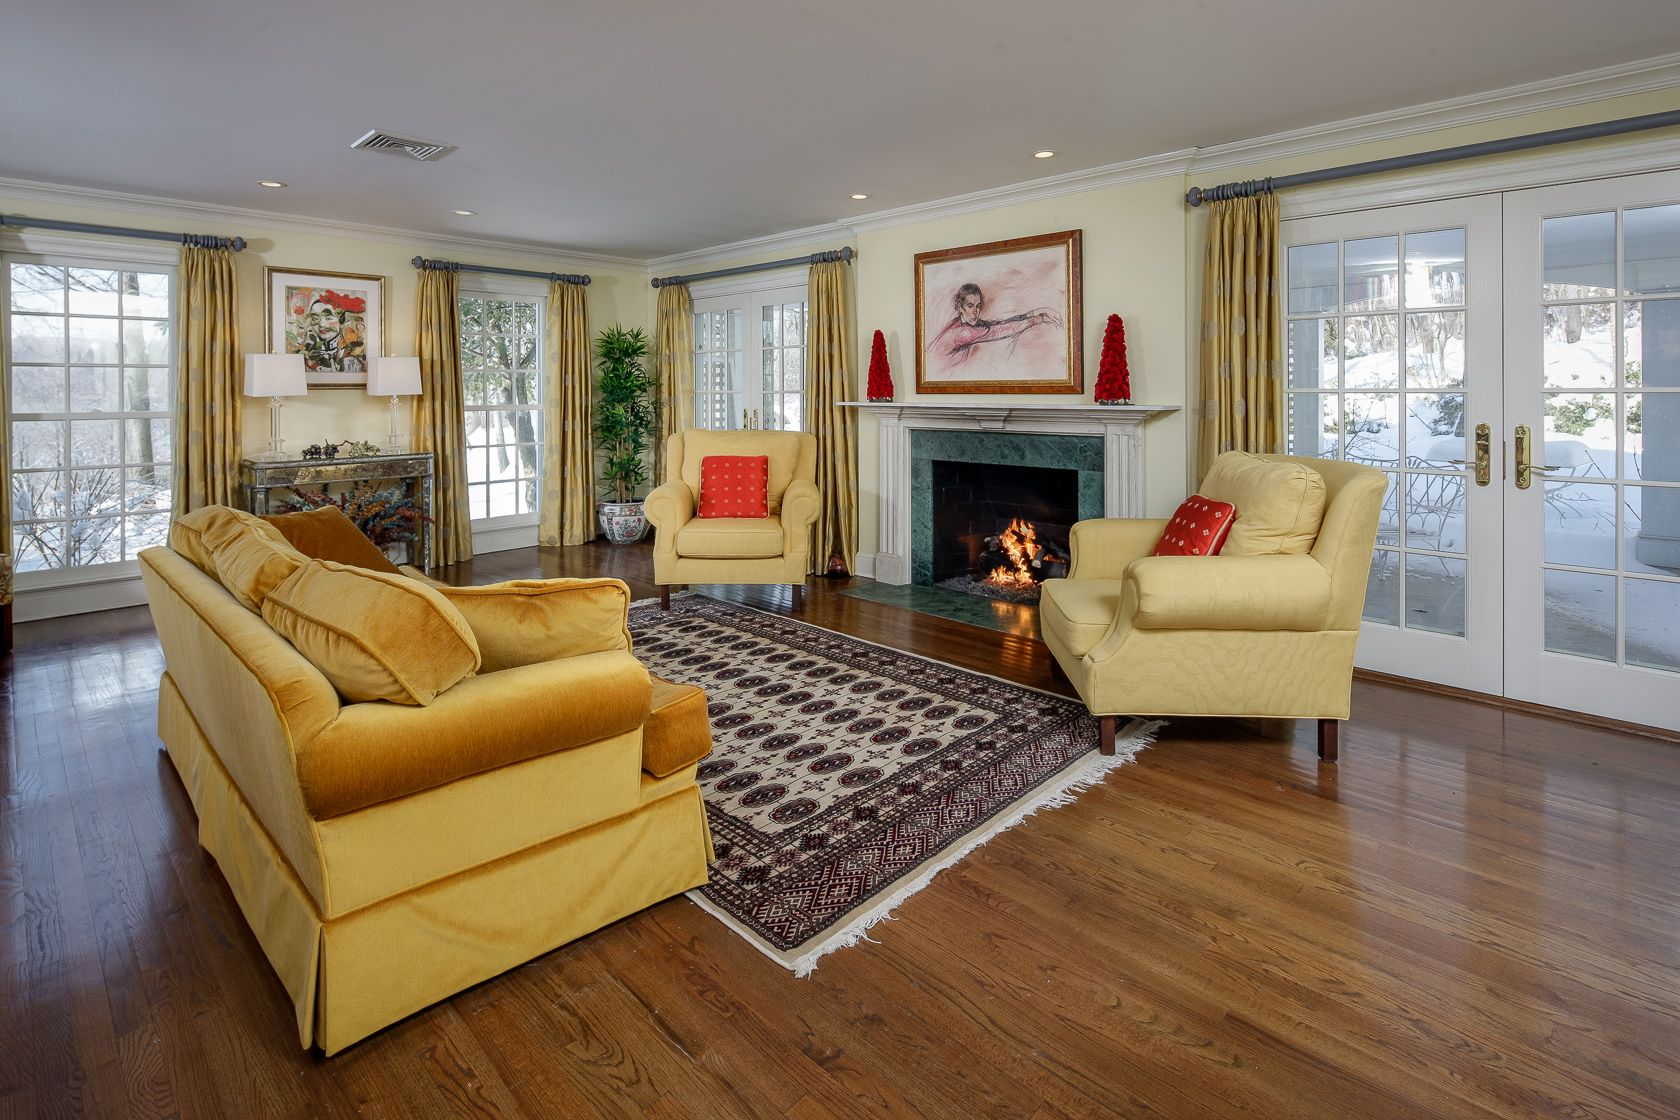 The Large Front To Back Living Room 17 X 24 Marries 3 Sides Of The Home And Features A Gas Burning Fireplace With M Wall Bookshelves Home Double French Doors